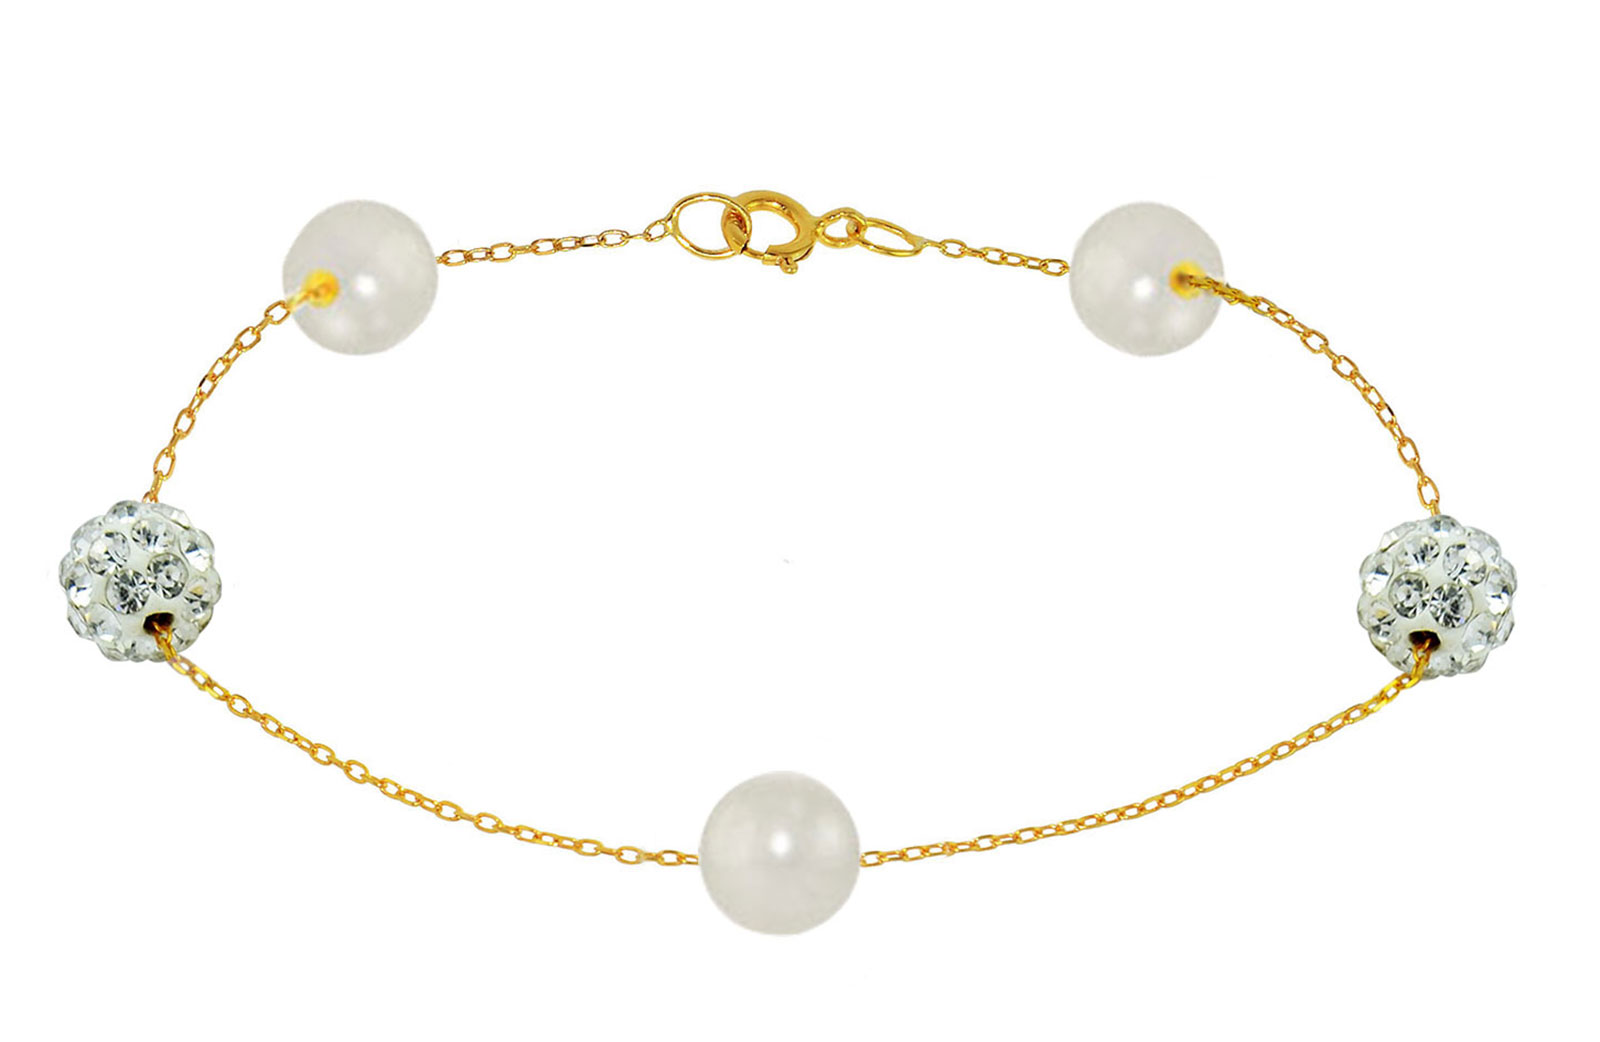 Vera Perla 18K Solid Gold Gradual Built-in 5-6mm White Pearls and Crystal Ball Bracelet